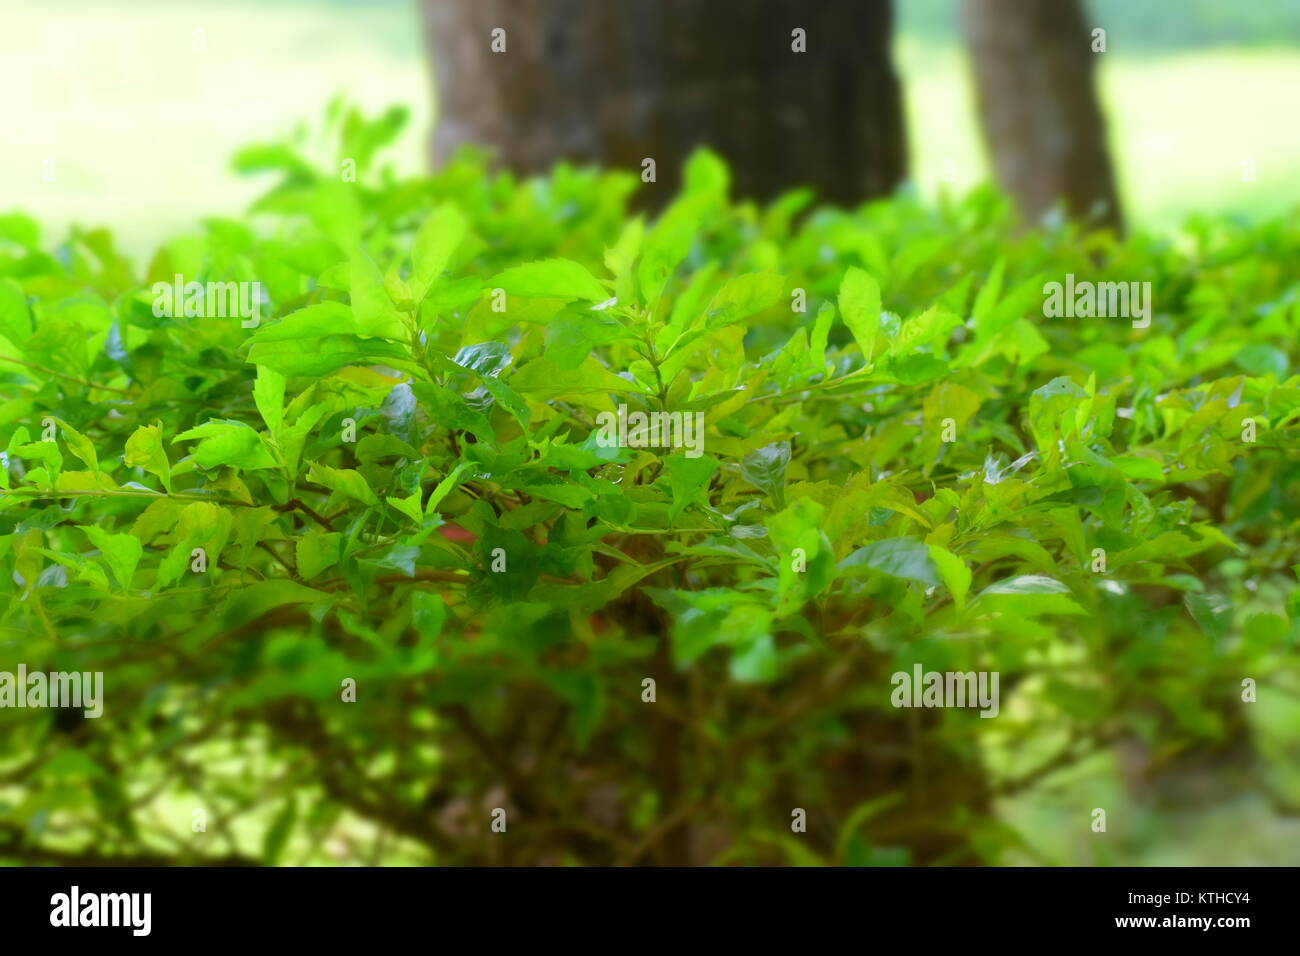 Green Leaves Hd Wallpaper Stock Photos Green Leaves Hd